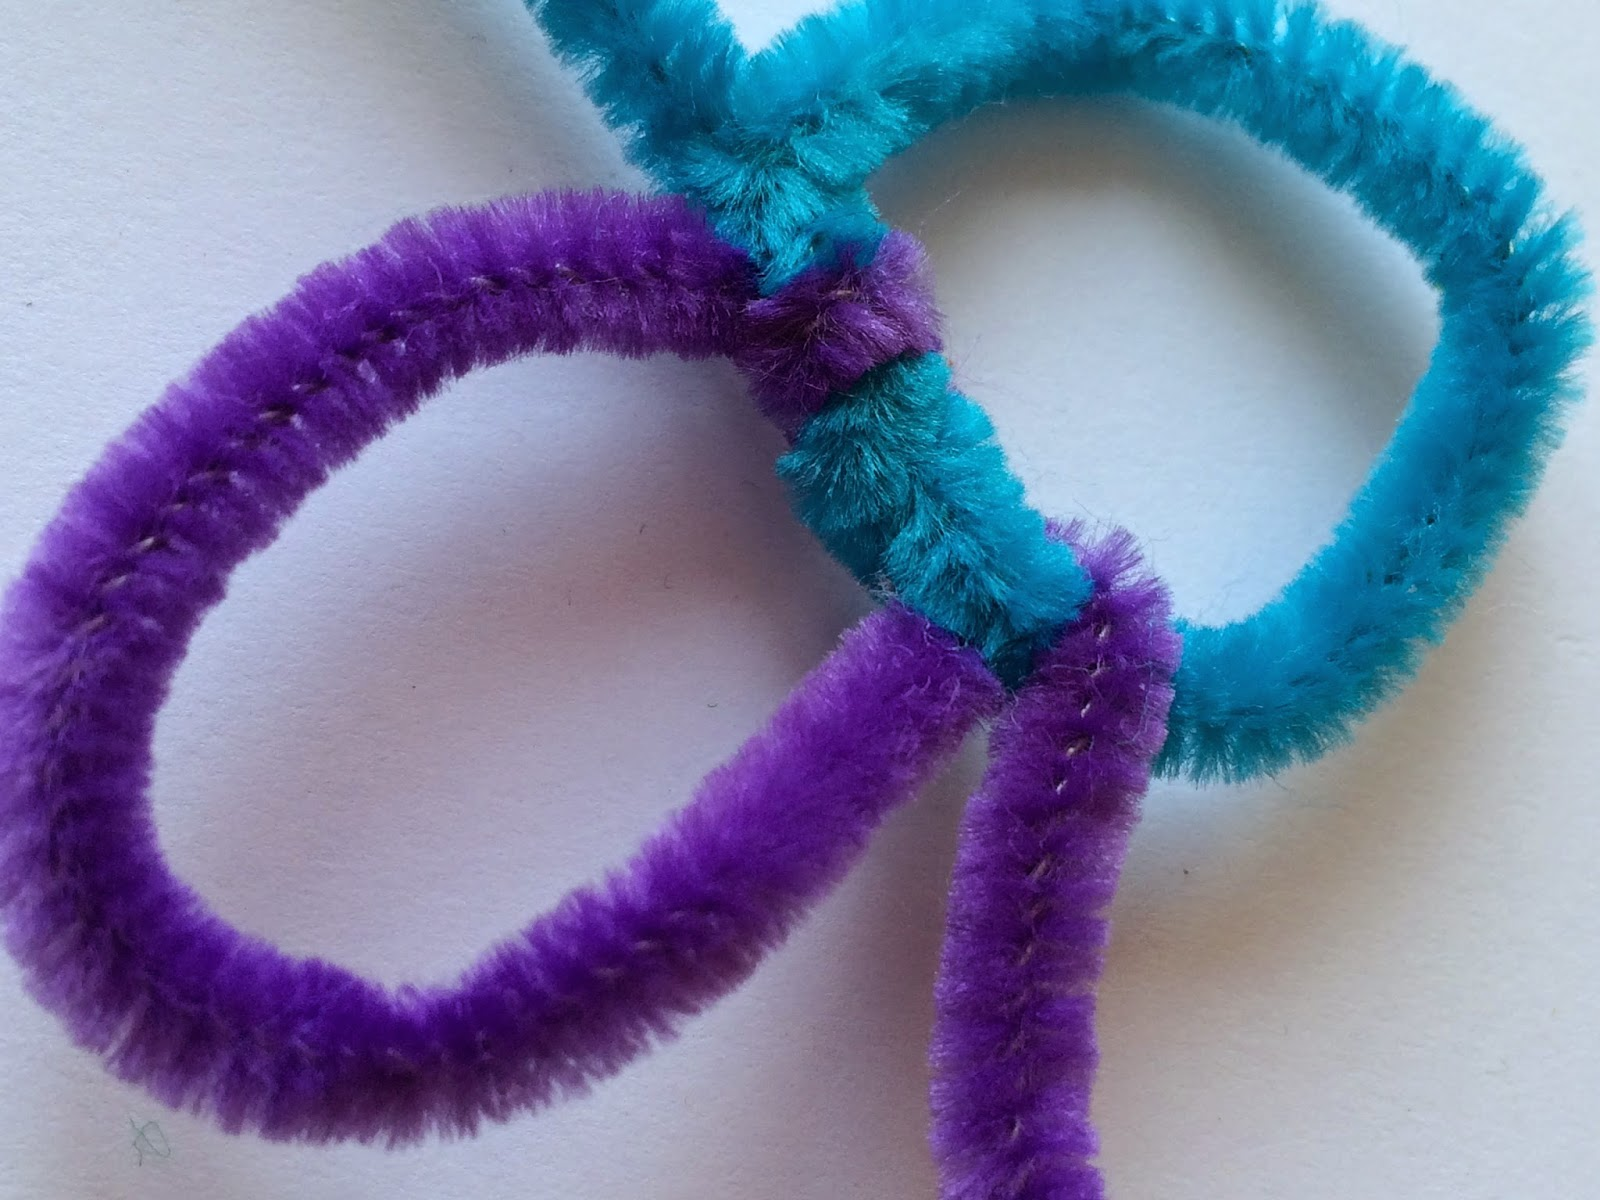 Pipe cleaners arts and crafts - Add Another Pipe Cleaner Where The First One Ended Repeat The Looping Pattern